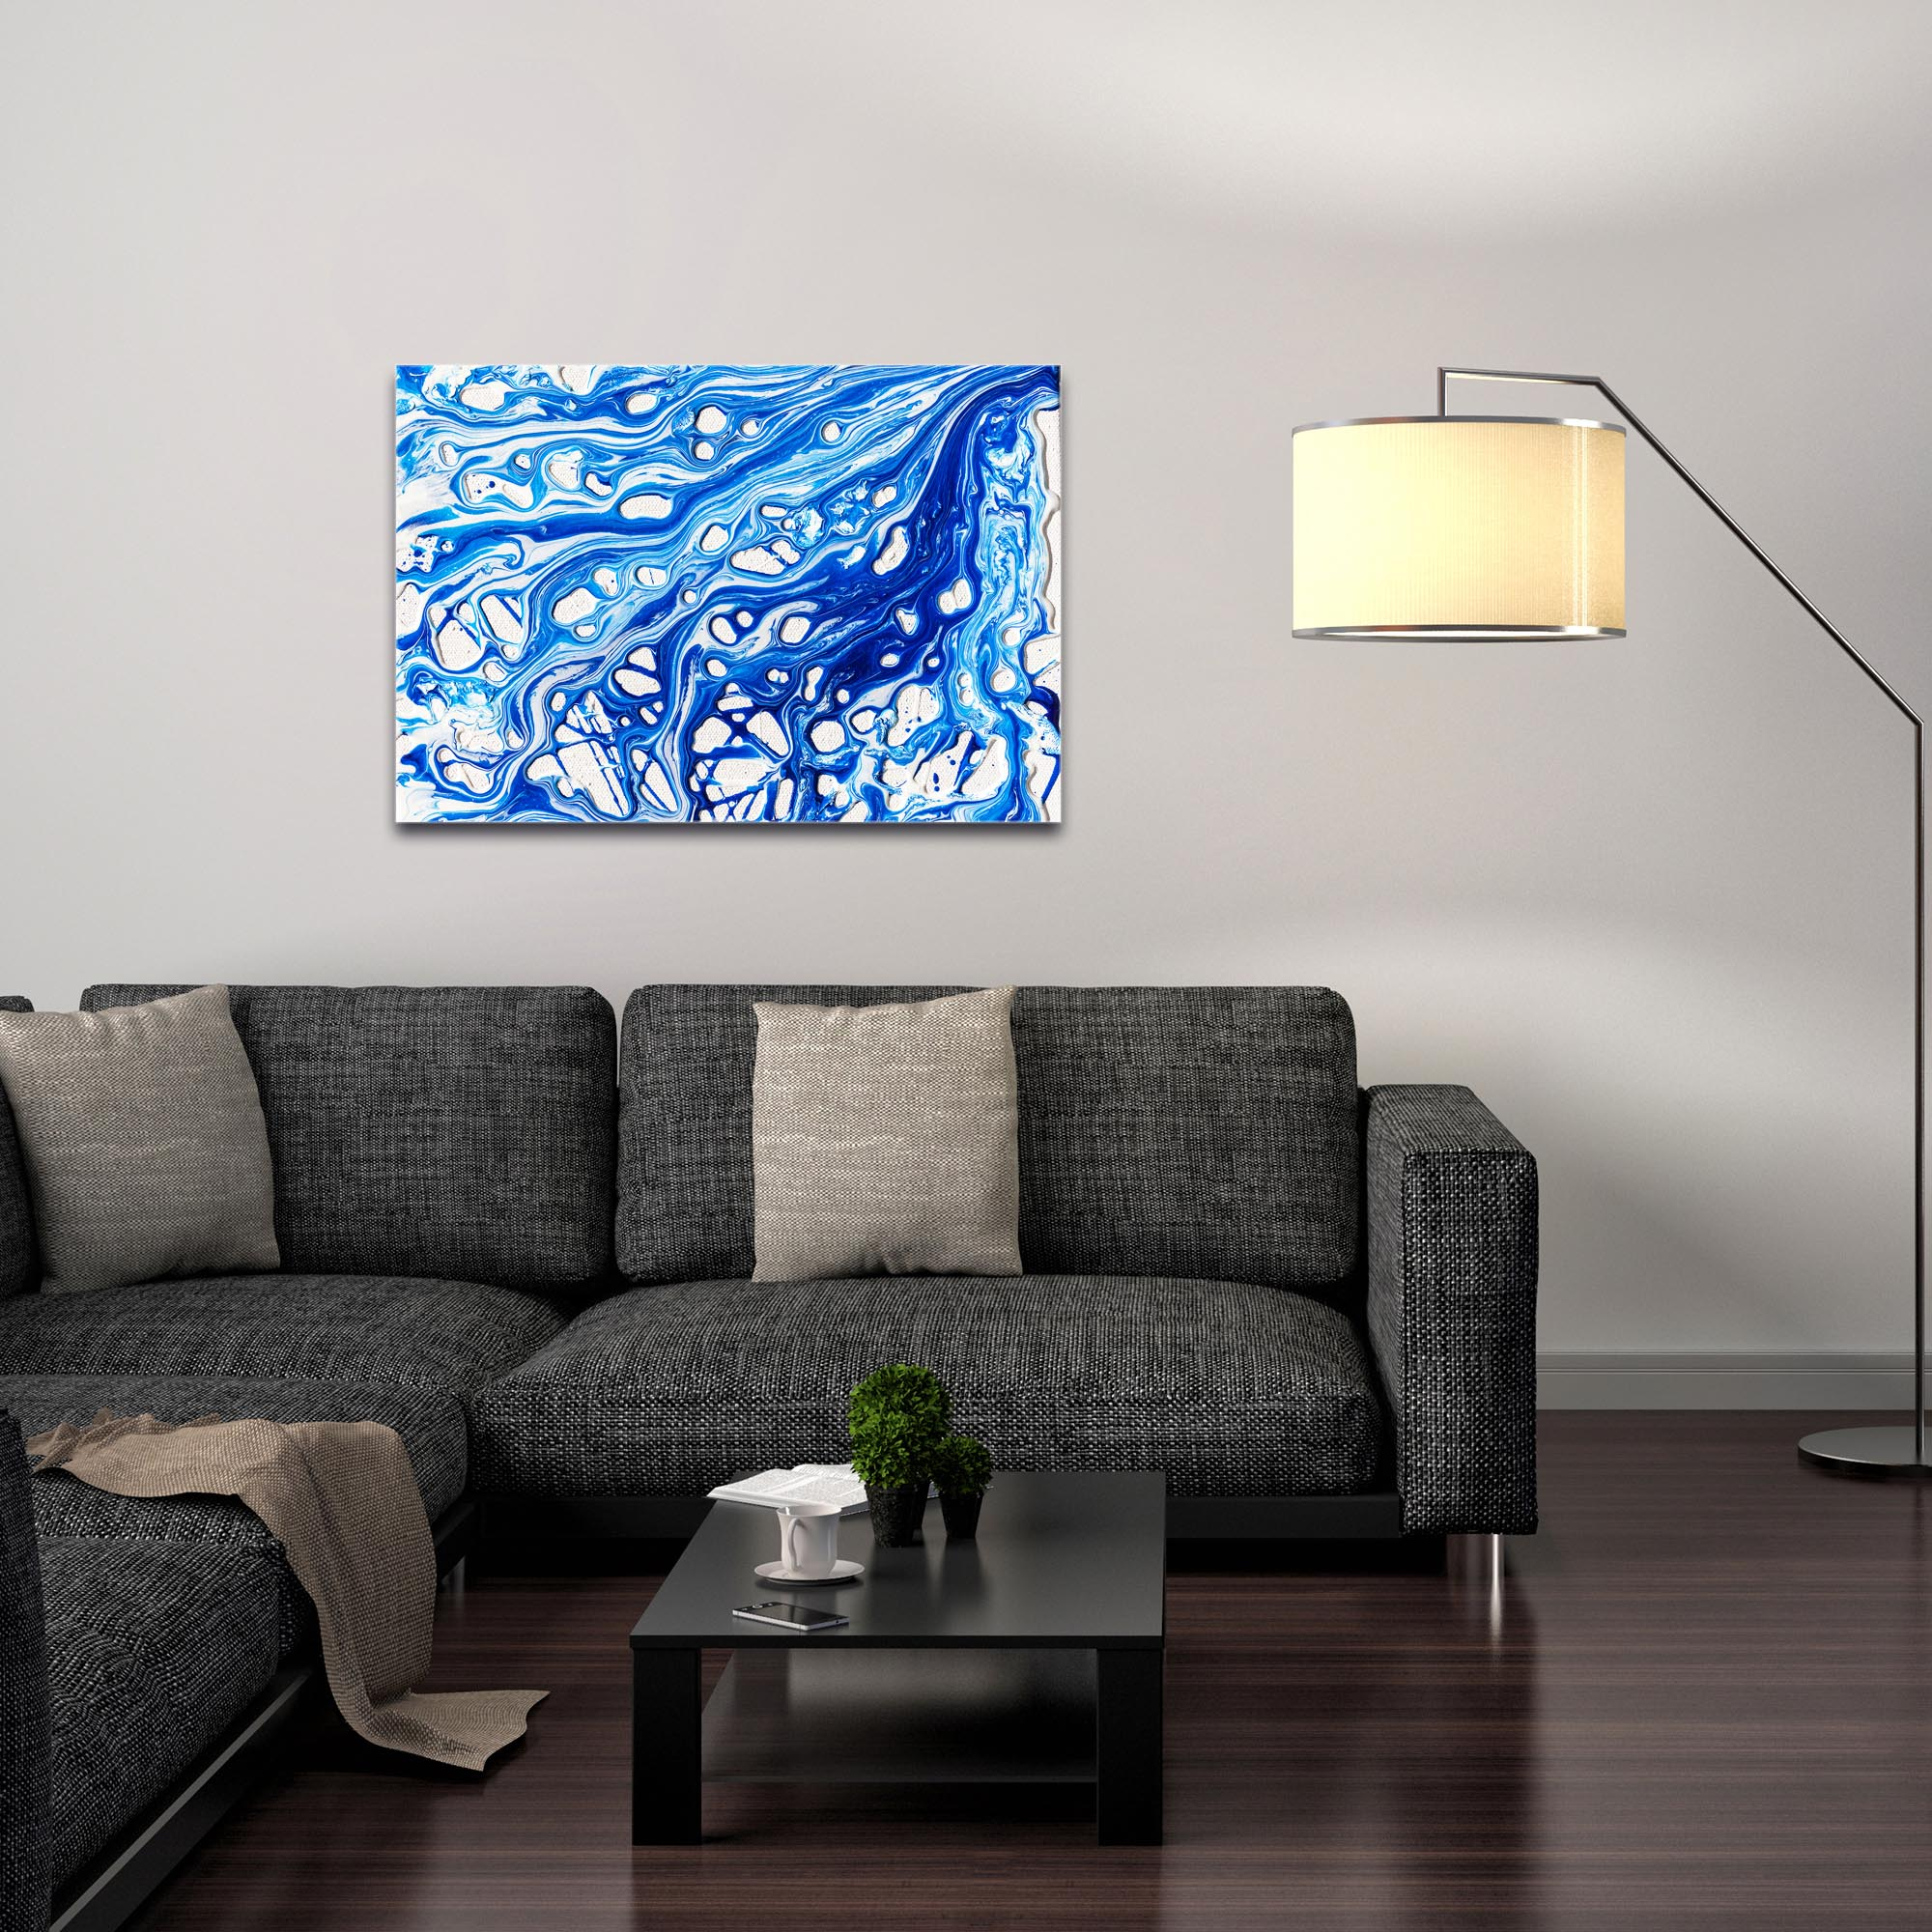 Abstract Wall Art 'Coastal Waters 2' - Colorful Urban Decor on Metal or Plexiglass - Image 3